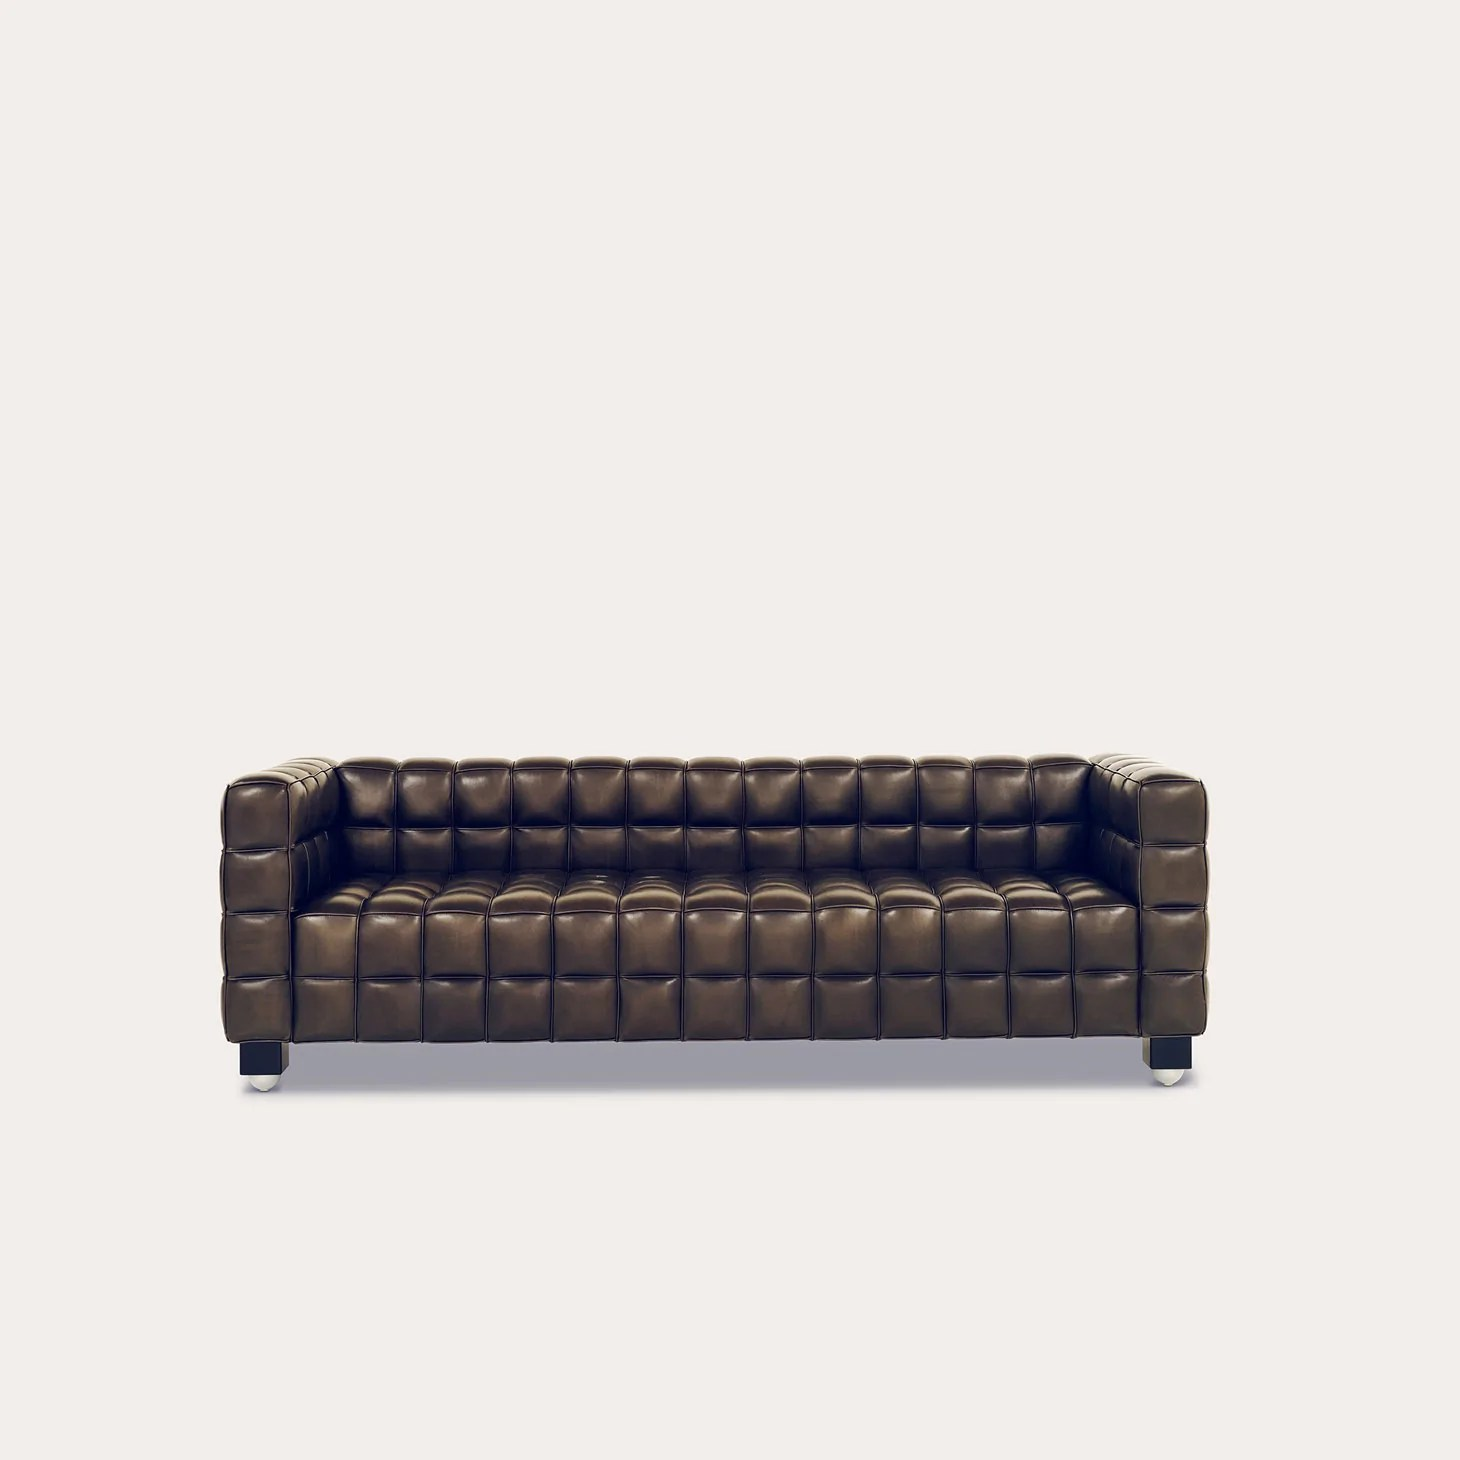 Chaise Aladin Kubus Sofas By Josef Hoffmann Avenue Road Avenue Road Usa